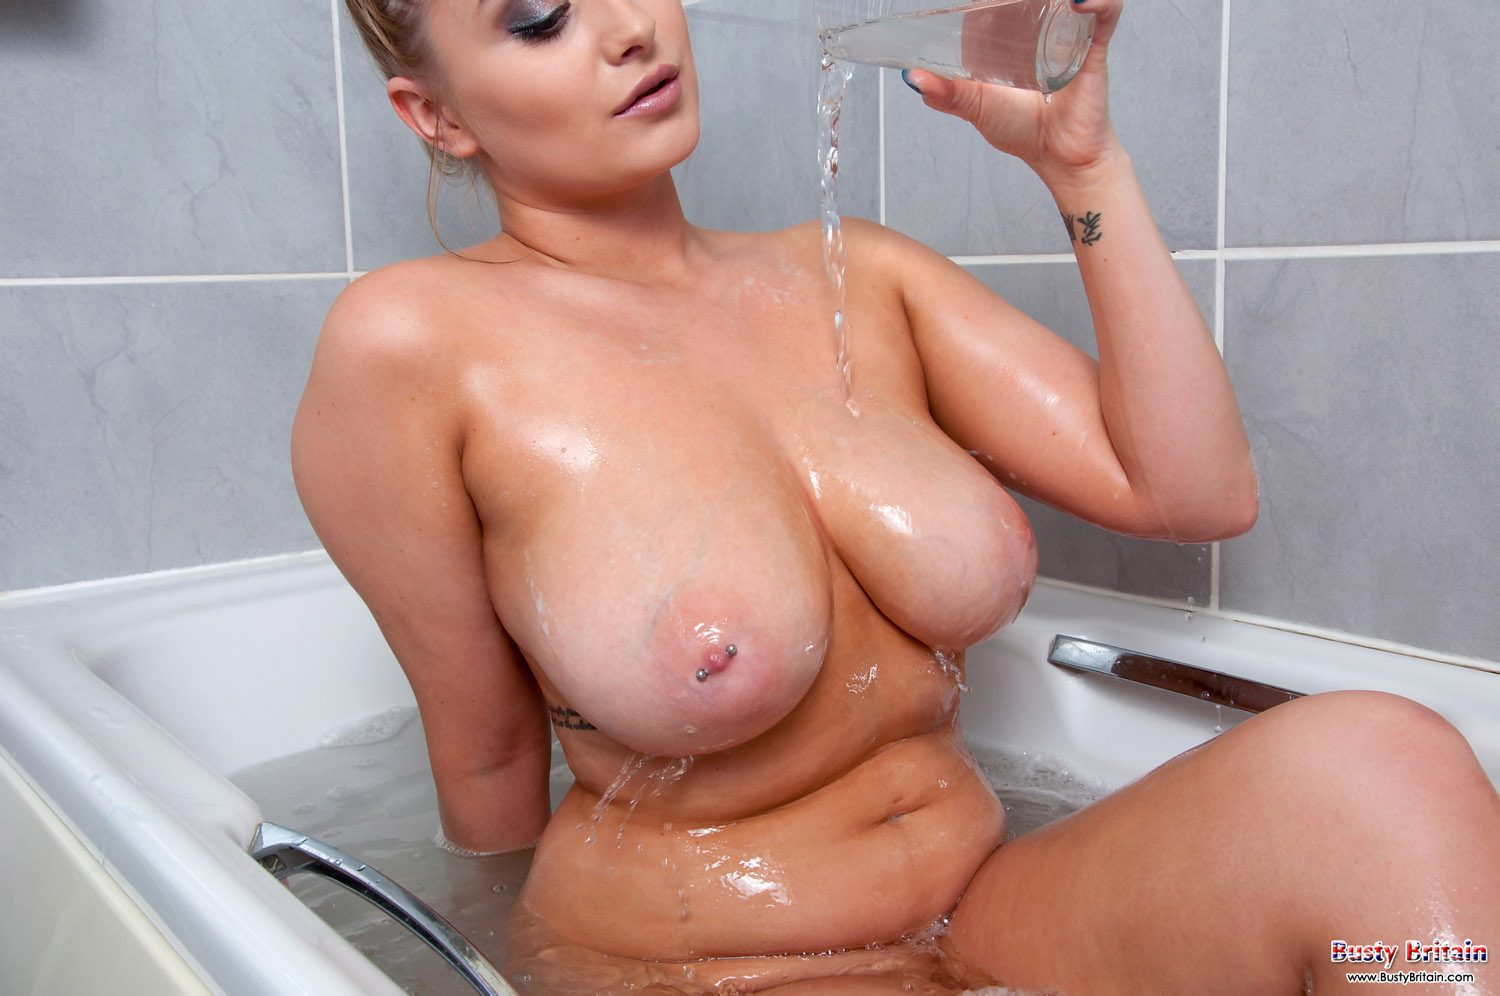 Rachel C Bubble Bath Busty Britain